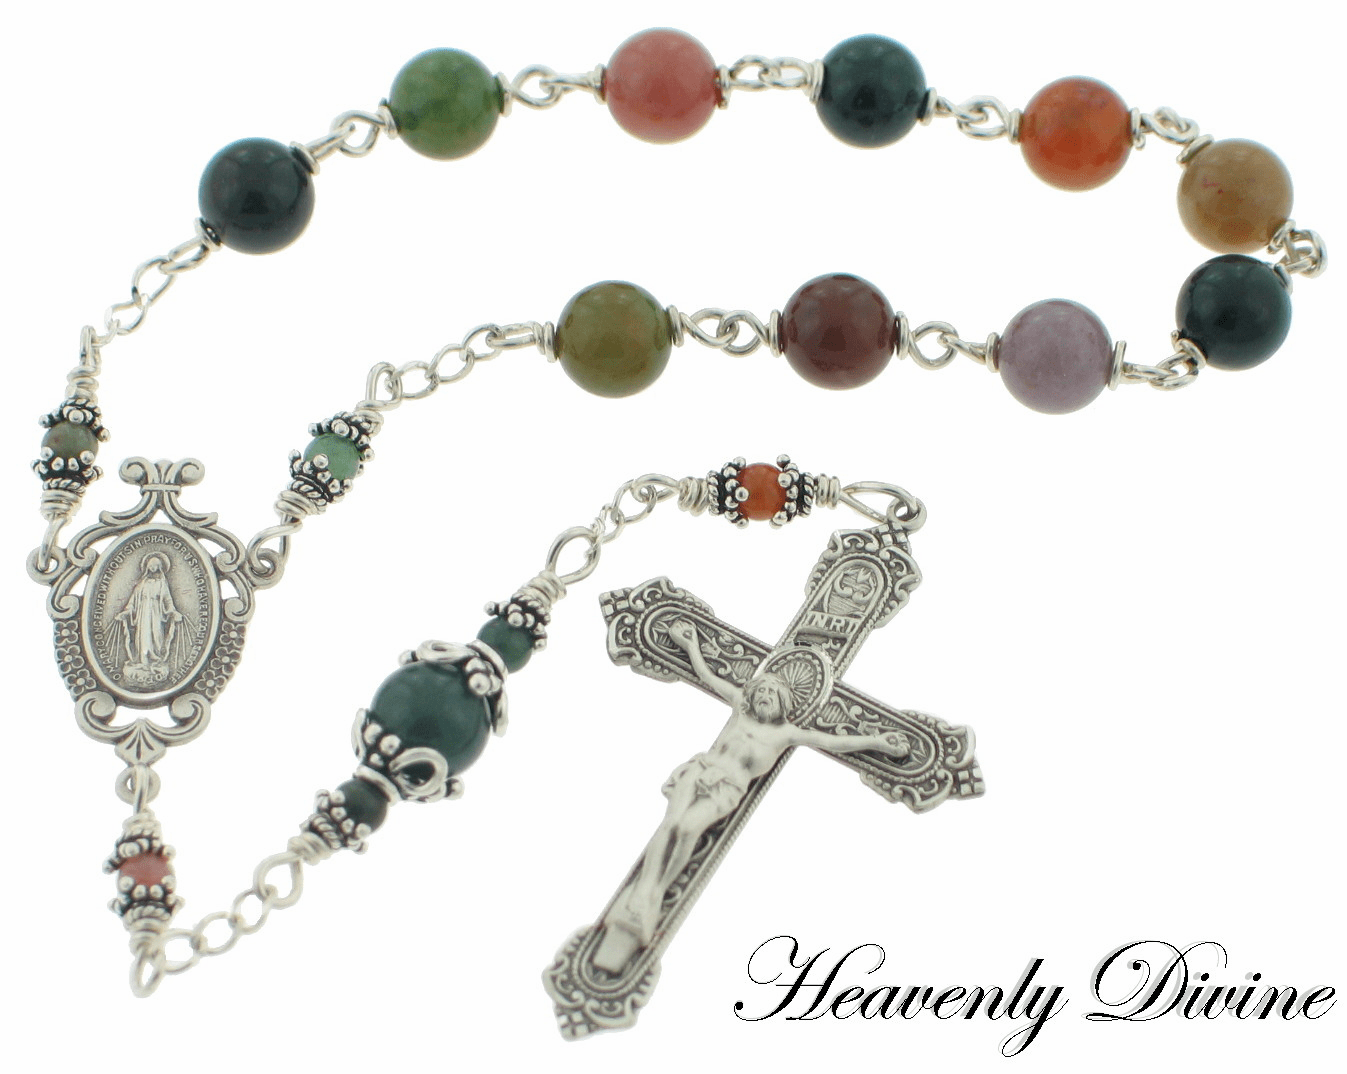 Heavenly Divine Sterling Silver Tenner One Decade Pocket Rosaries